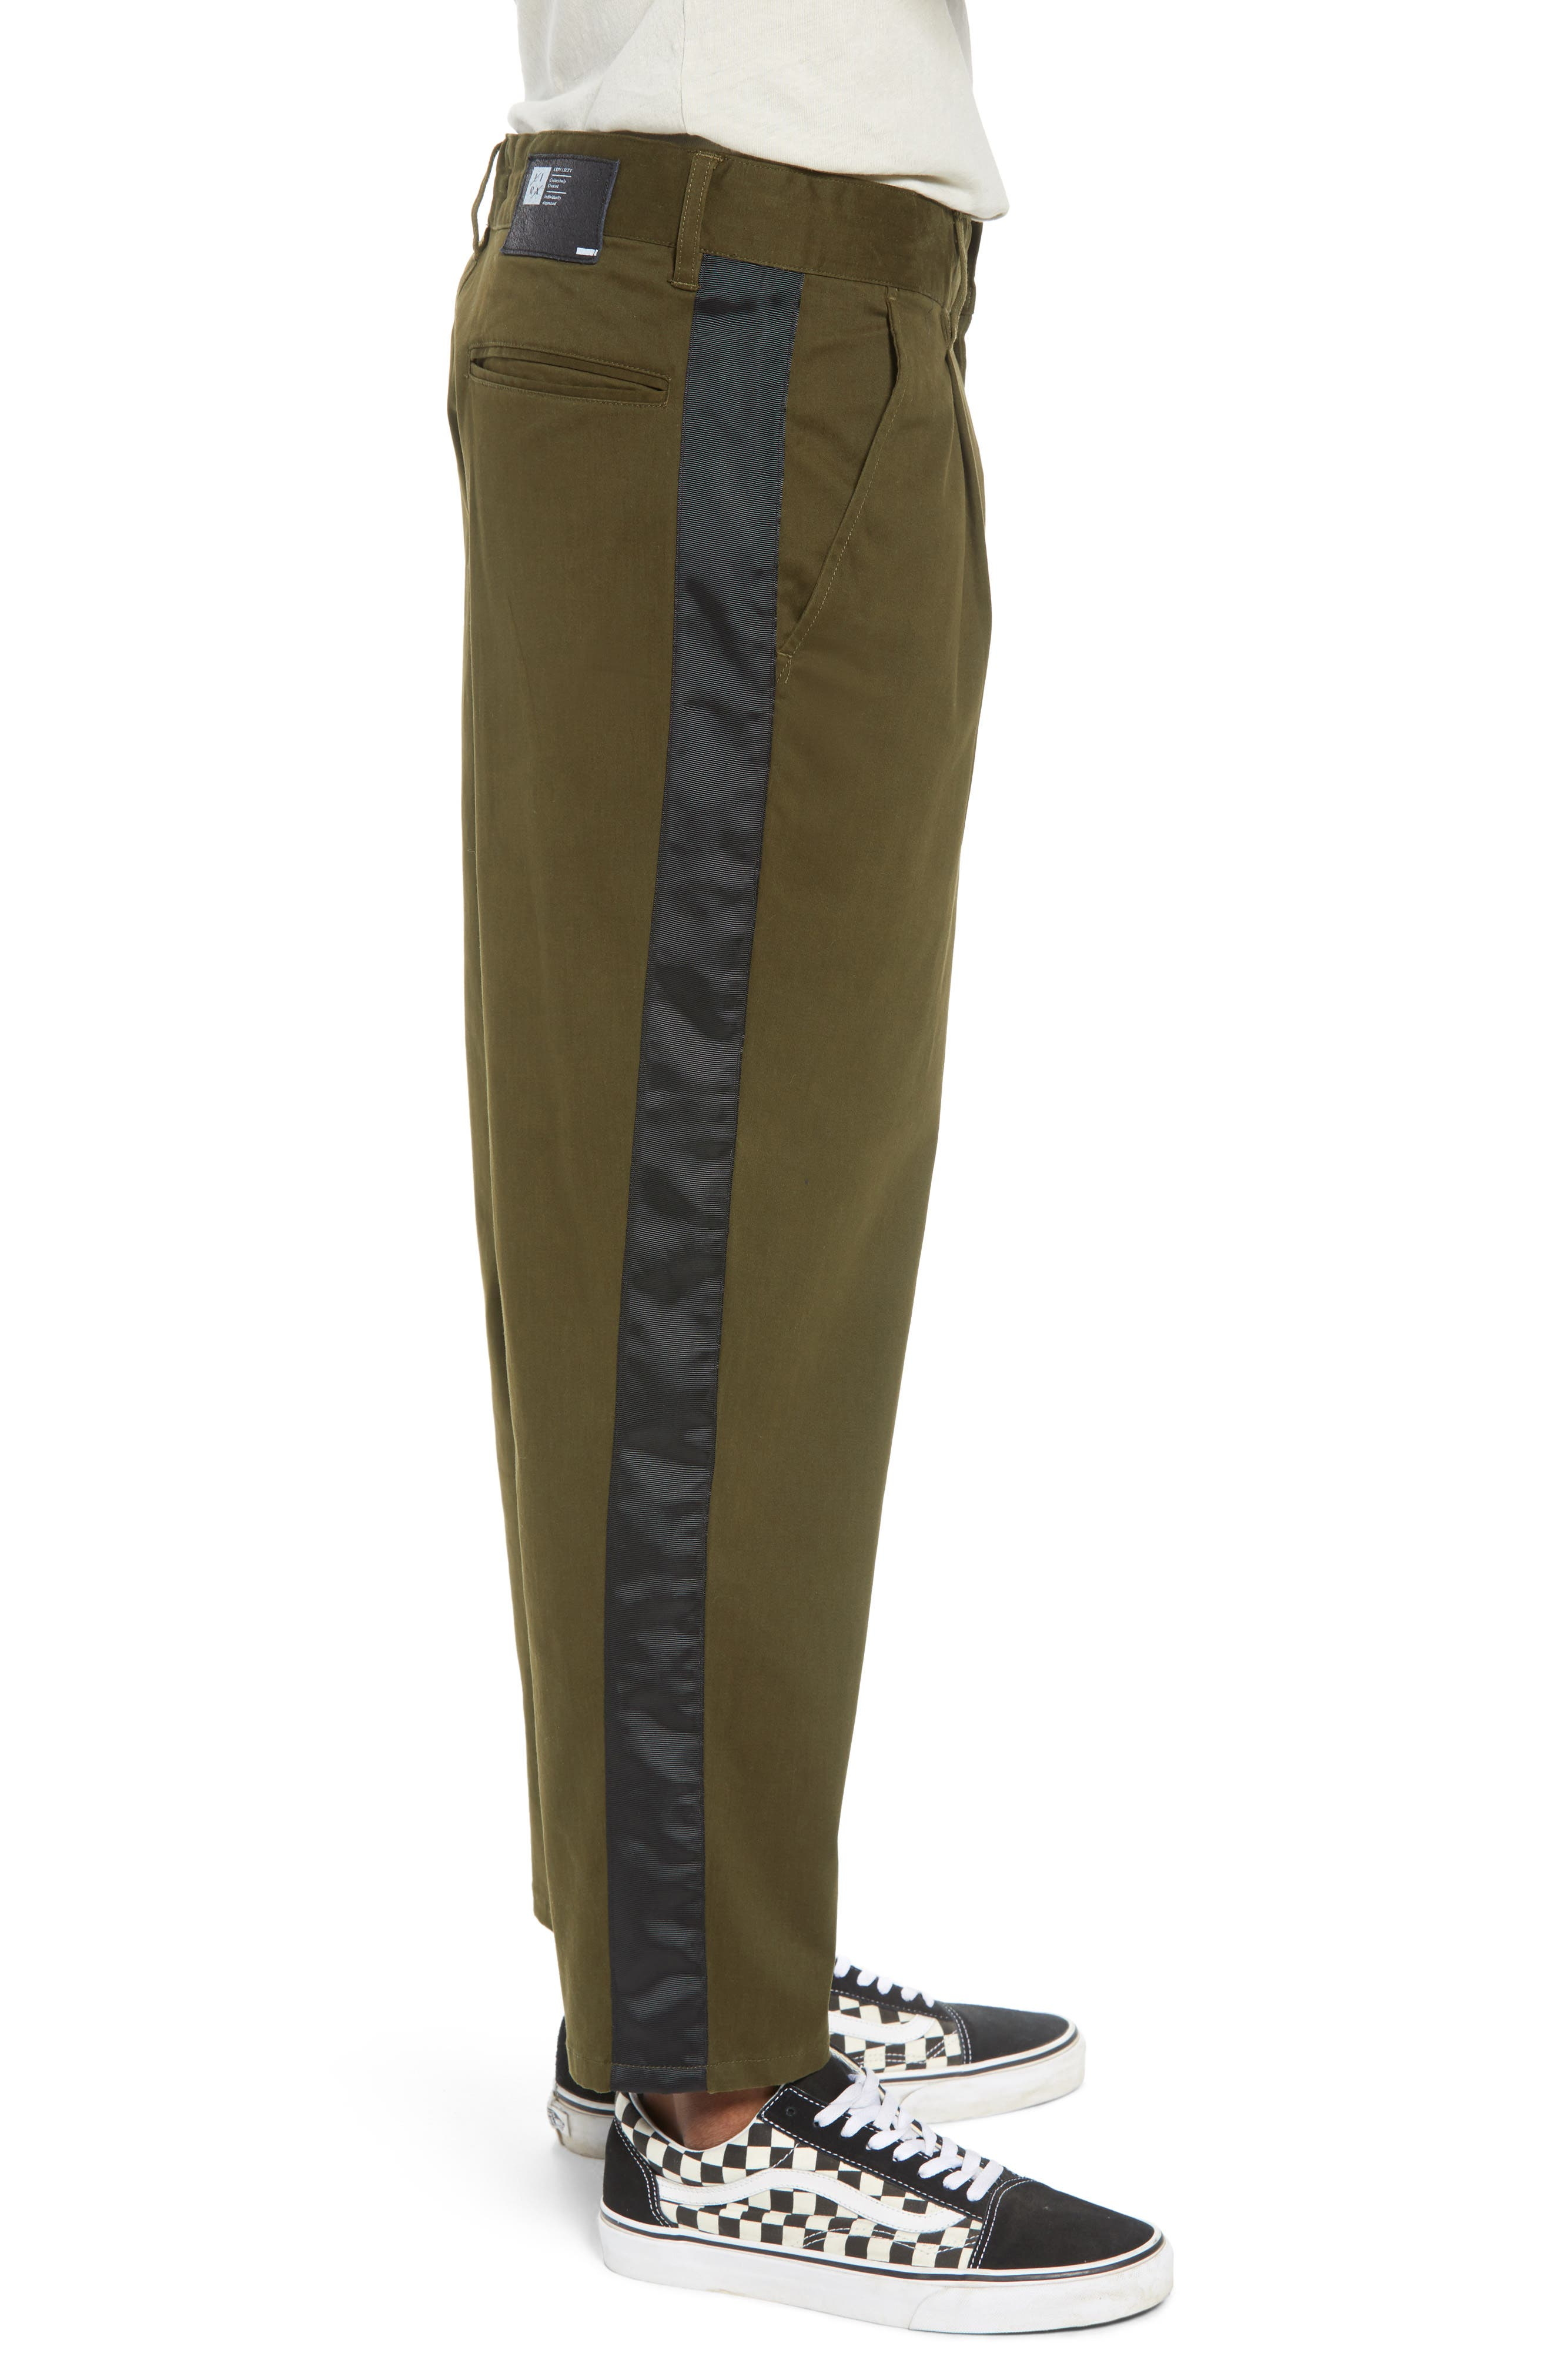 Lincoln Relaxed Fit Pants,                             Alternate thumbnail 3, color,                             300